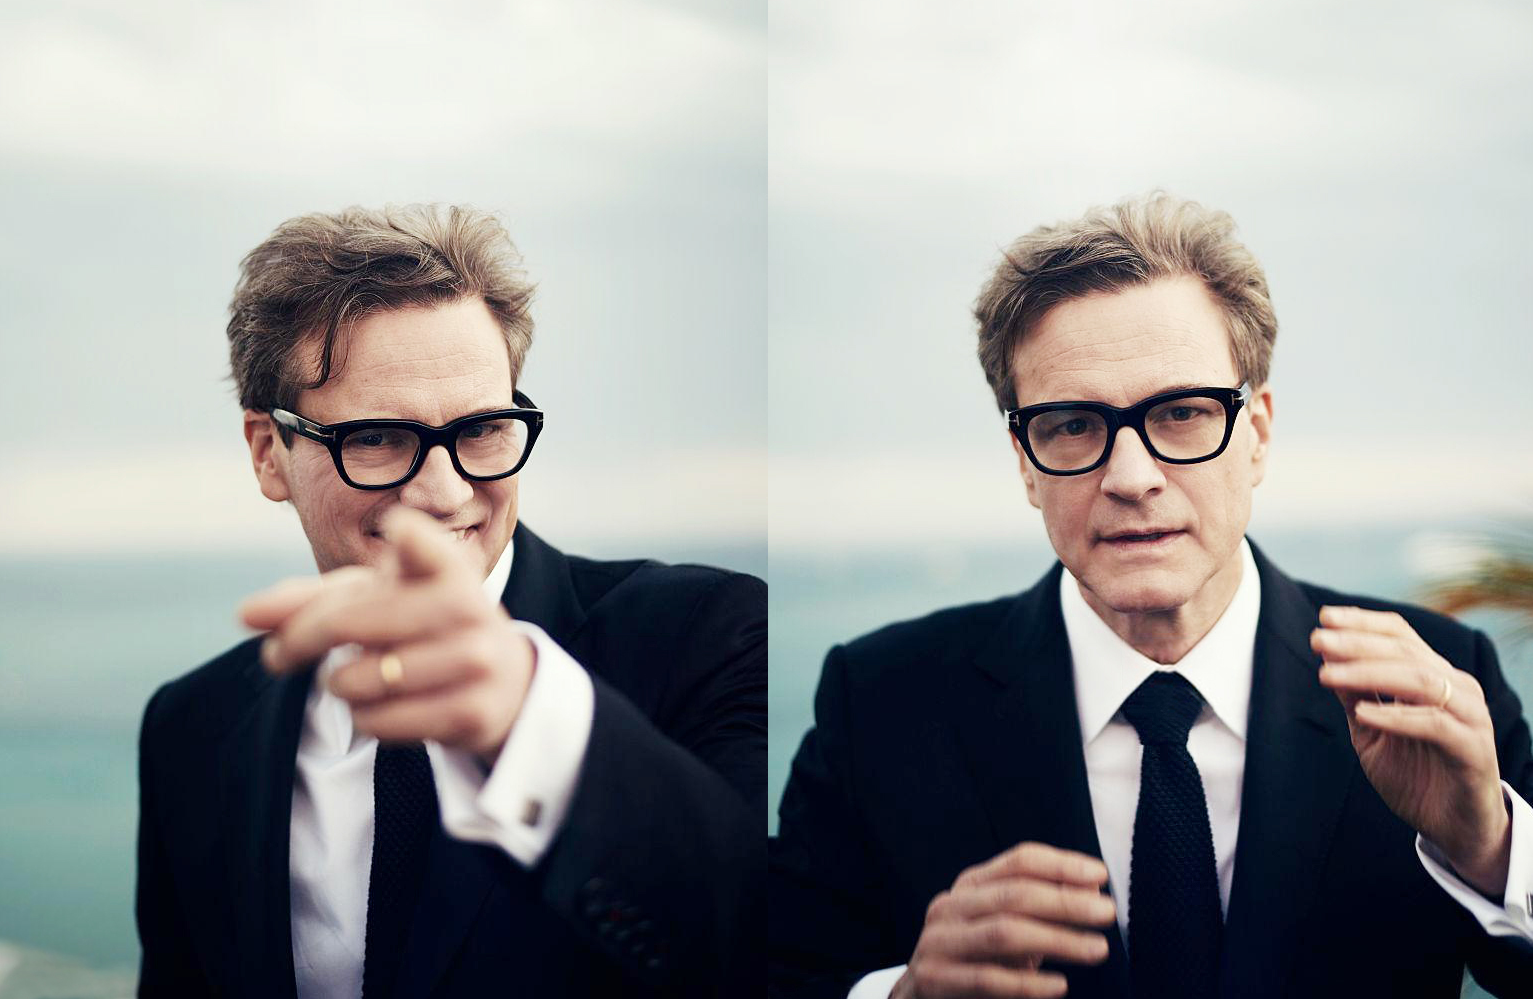 Colin Firth Backgrounds, Compatible - PC, Mobile, Gadgets| 1533x999 px